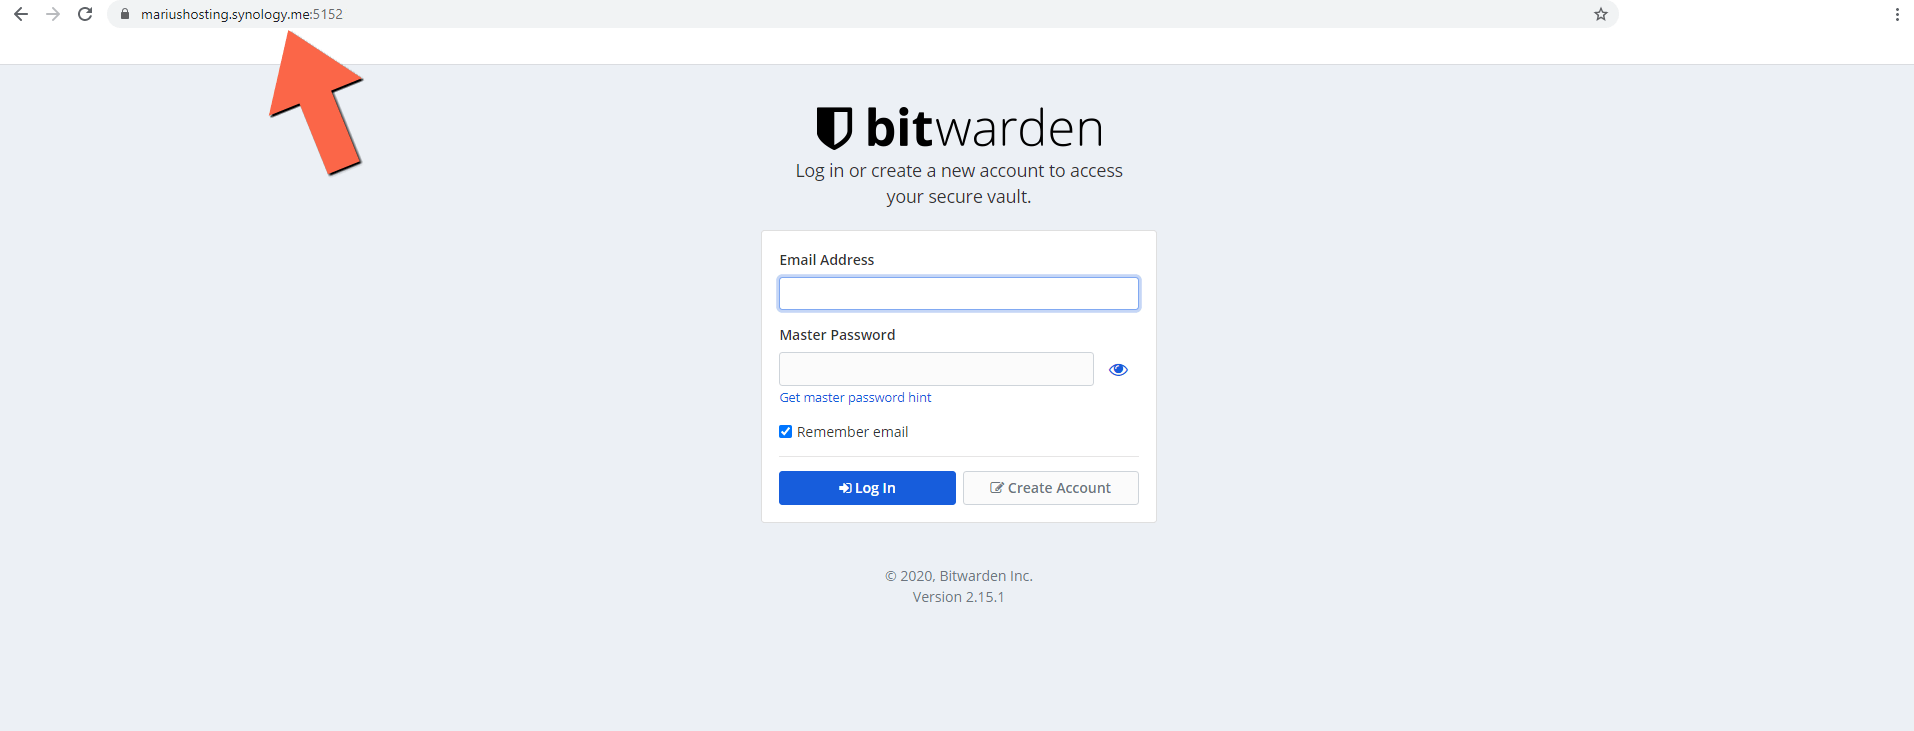 5 Synology NAS BitWarden setup HTTPS SSL